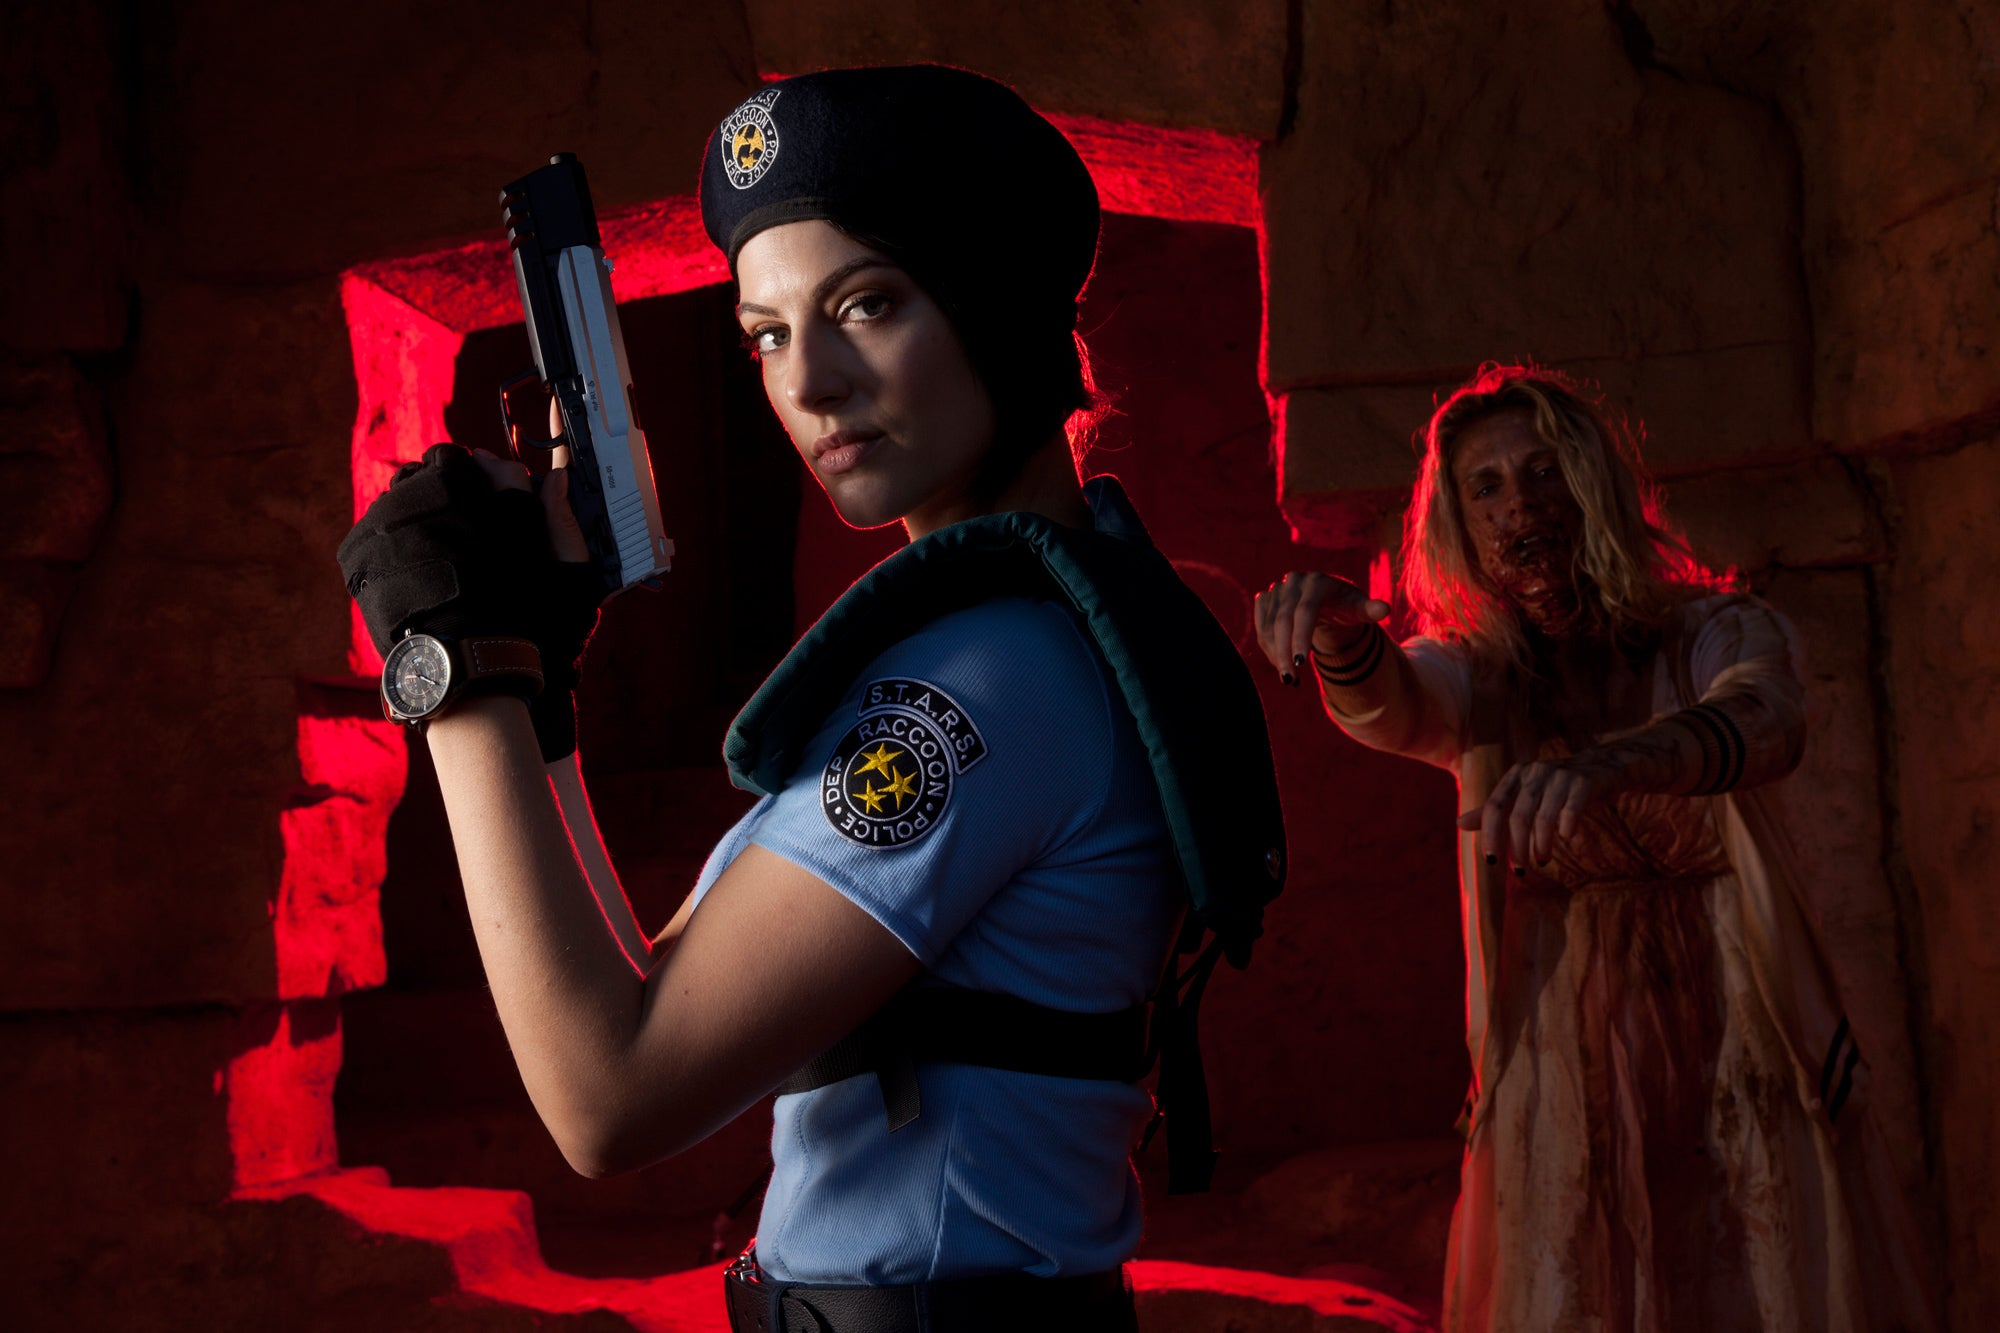 Resident Evil Actress Cosplays As Resident Evil Character